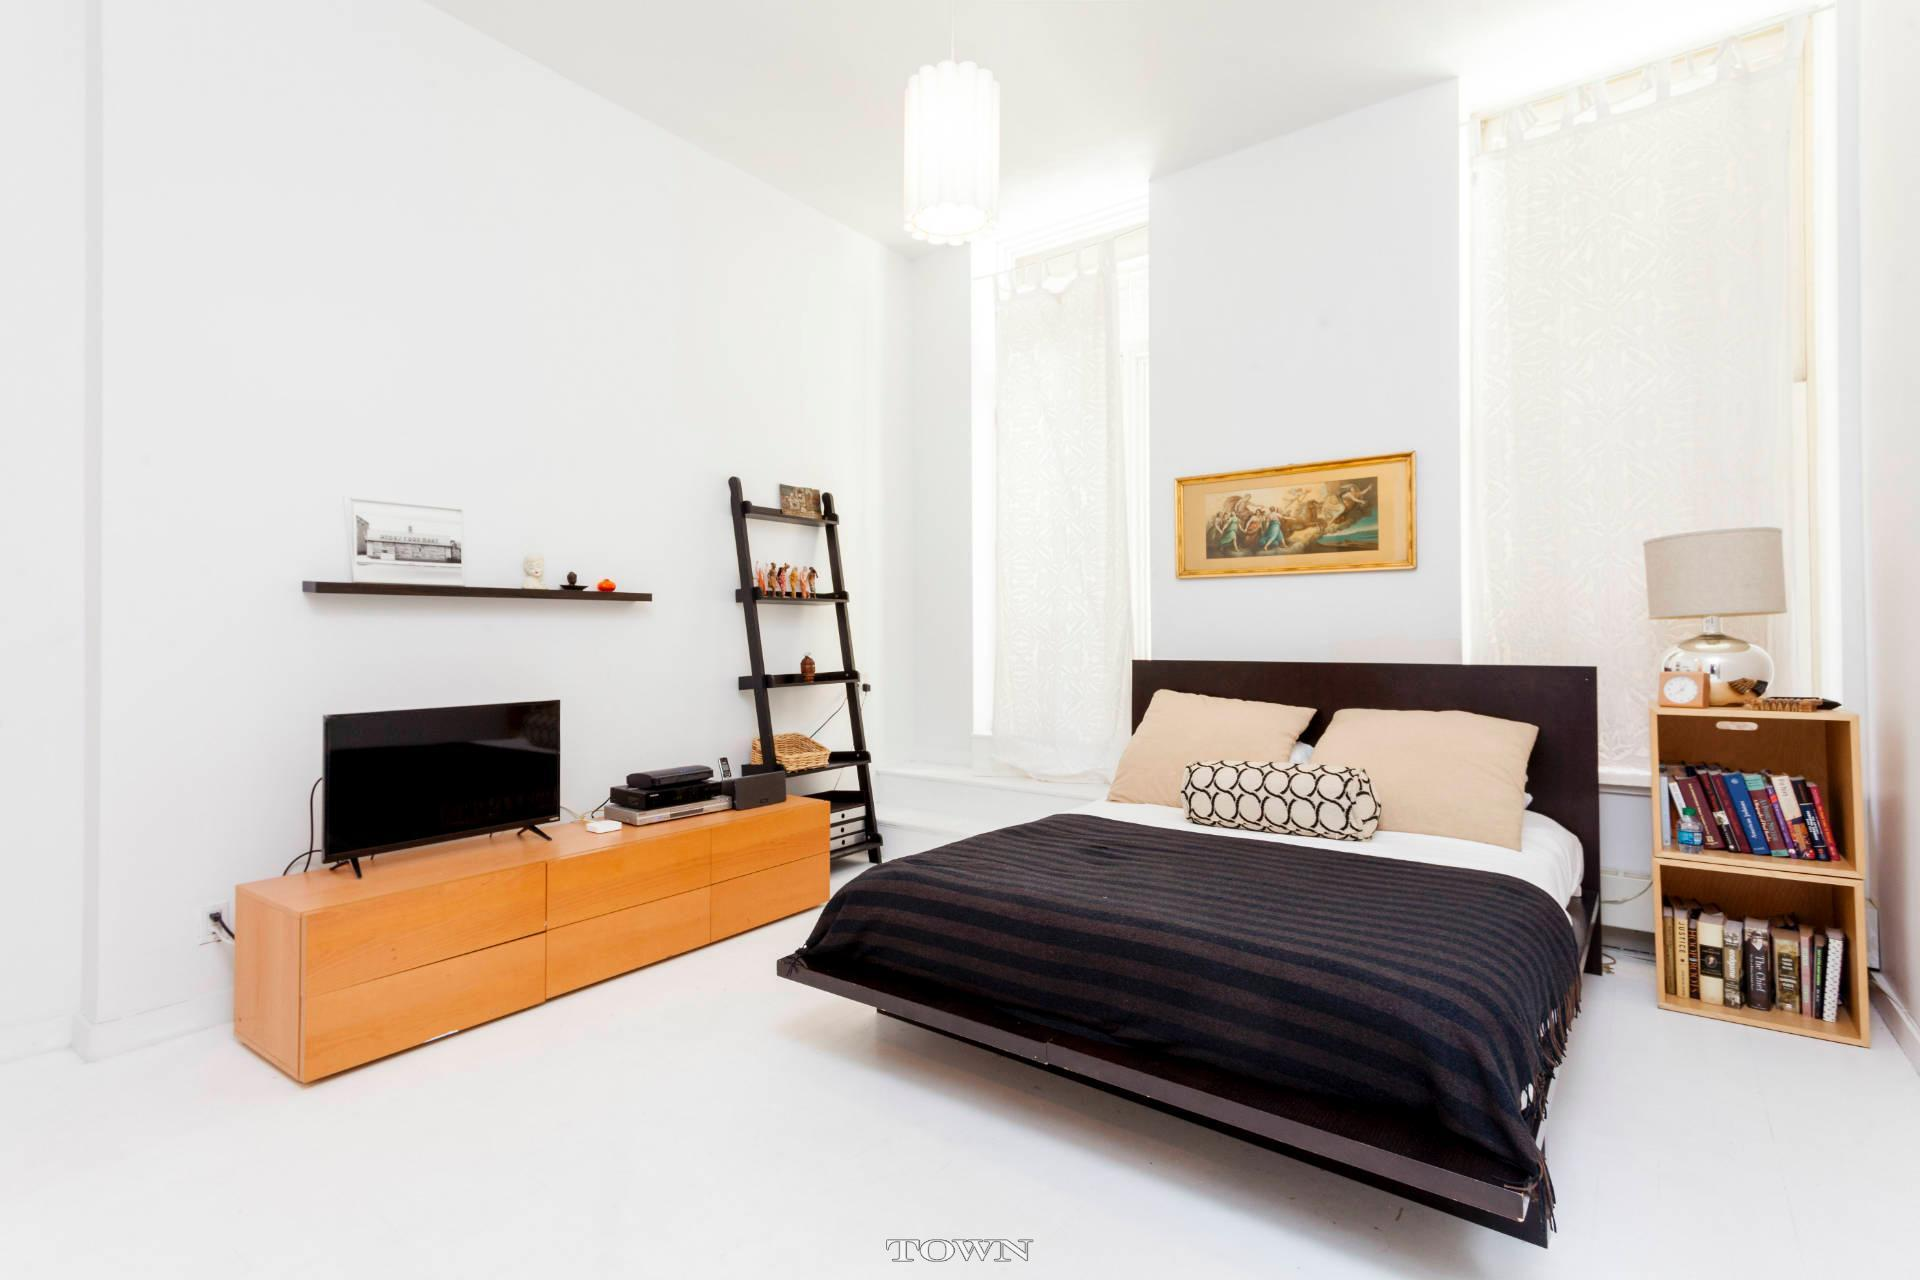 27 Great Jones Street, loft, rental, noho, bedroom